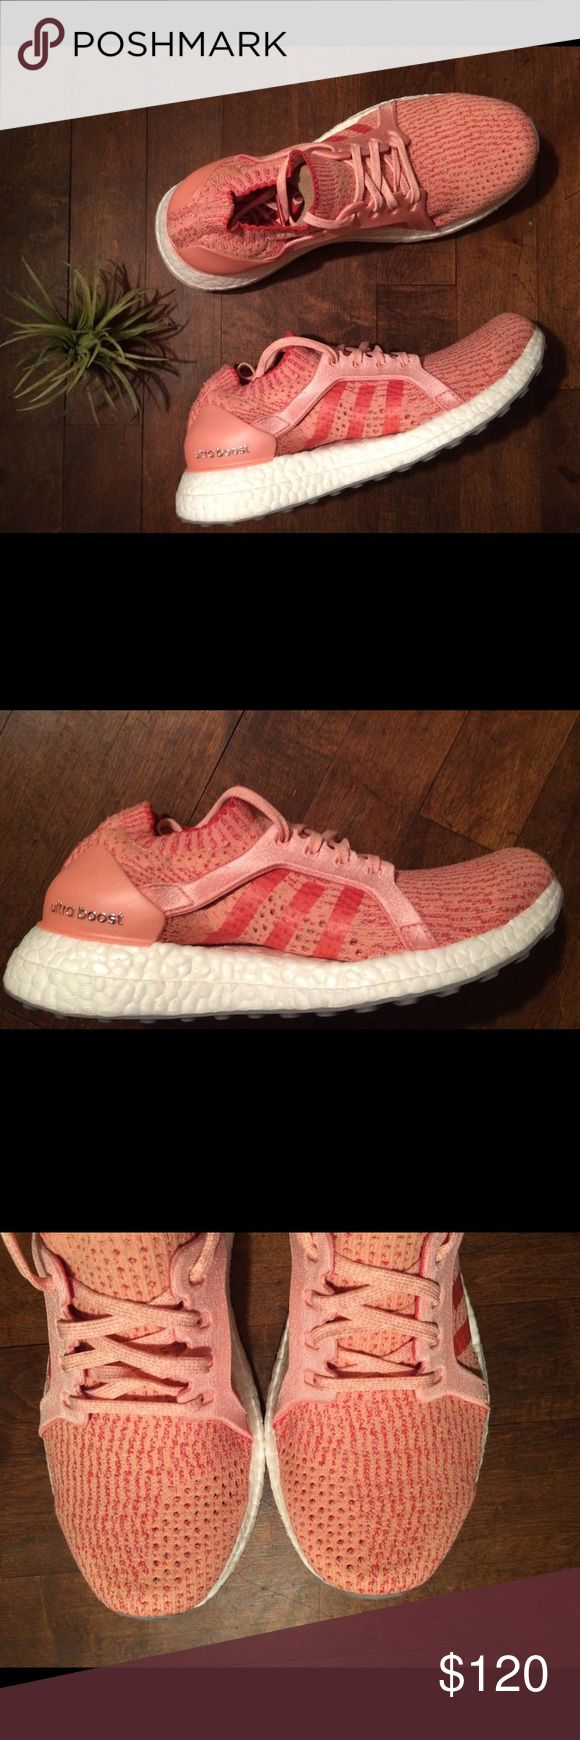 adidas gazelle pink leather urban adidas ultra boost x shoes women